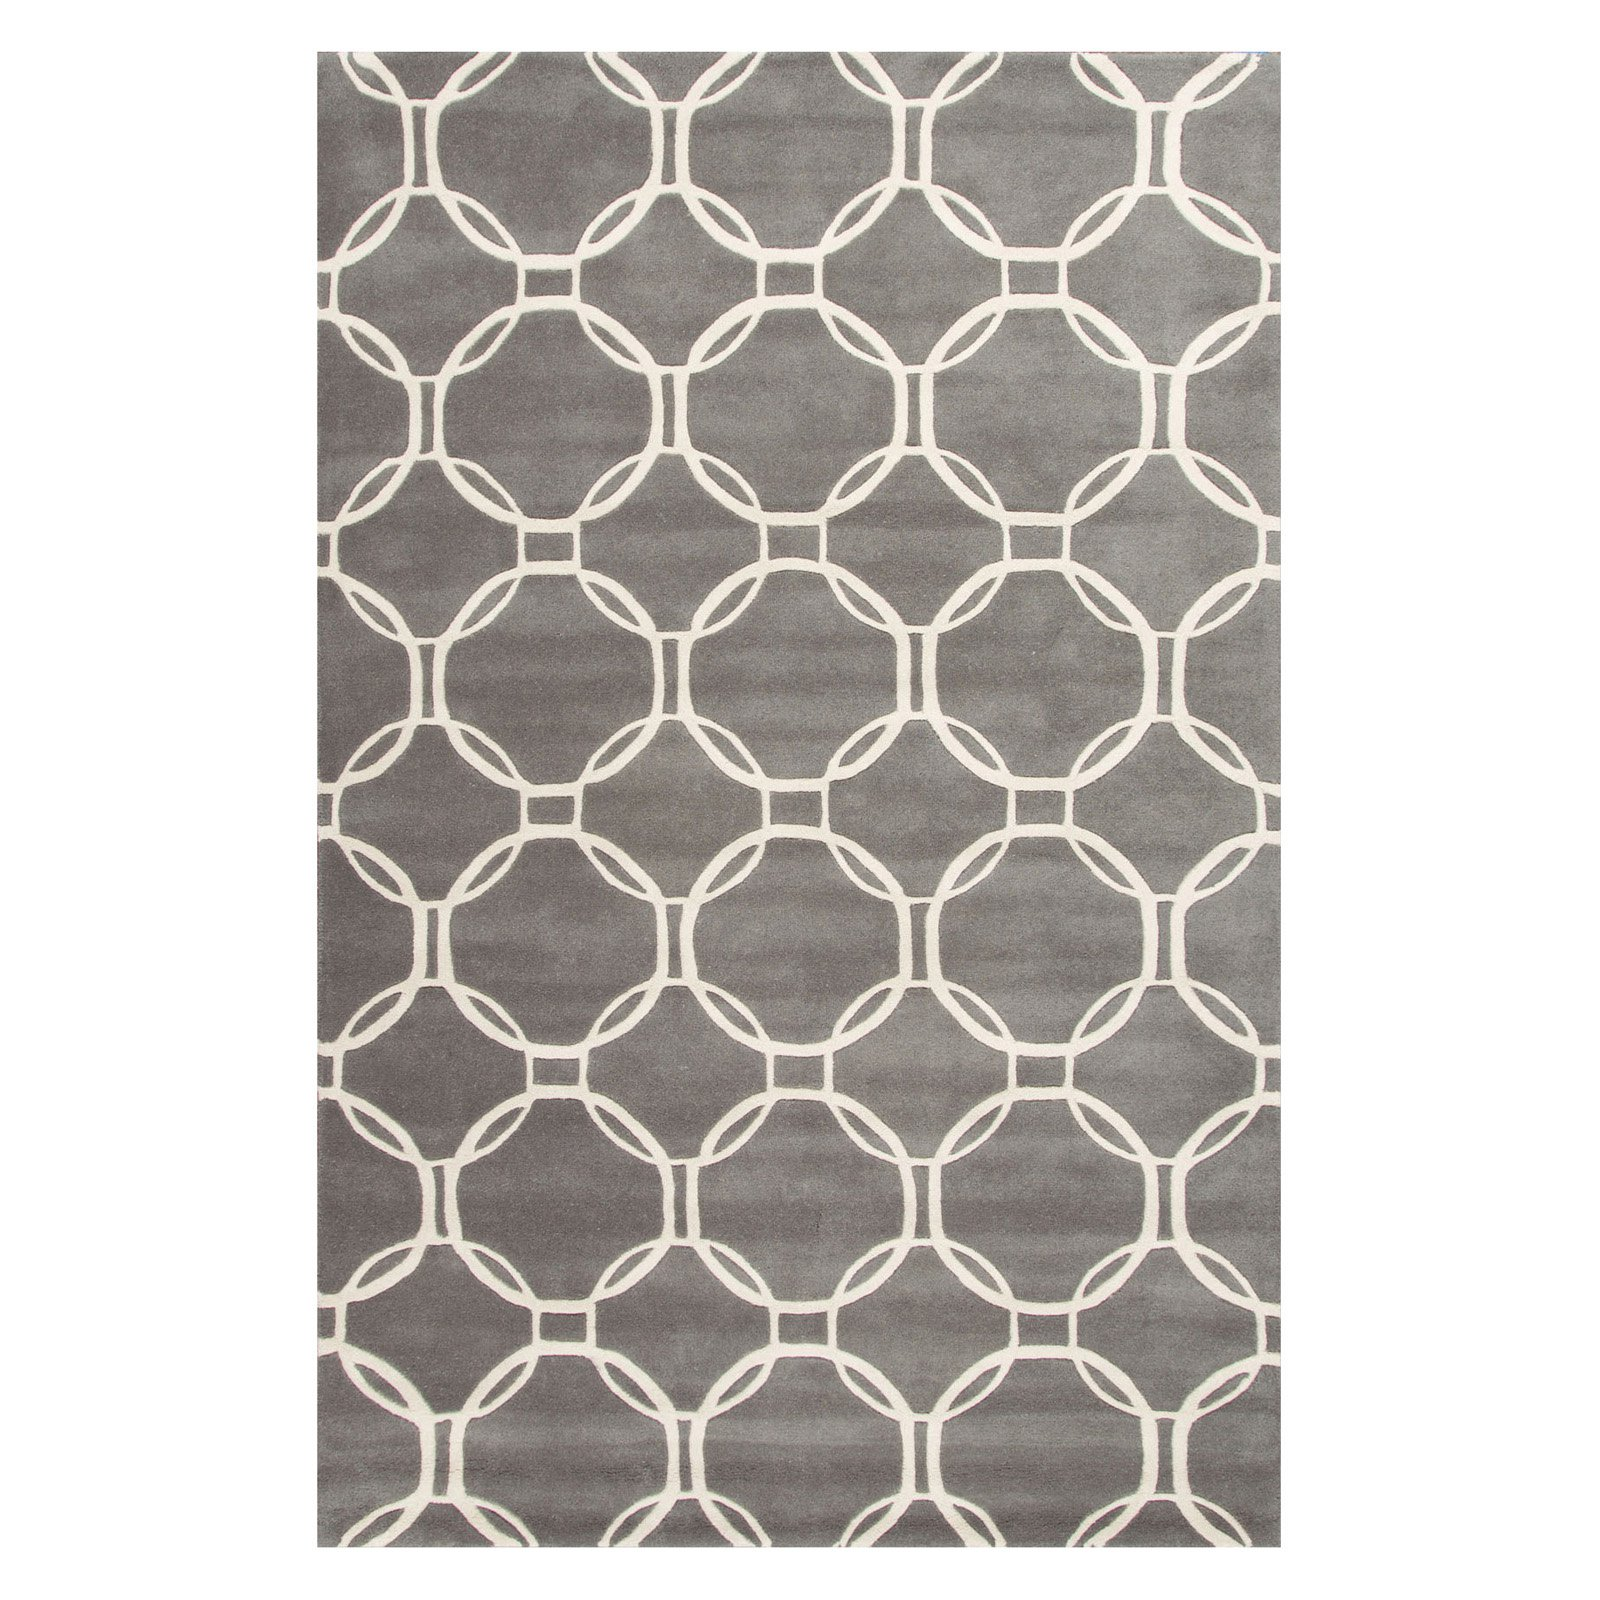 Jaipur Lounge Hand-Tufted Abeet Area Rug